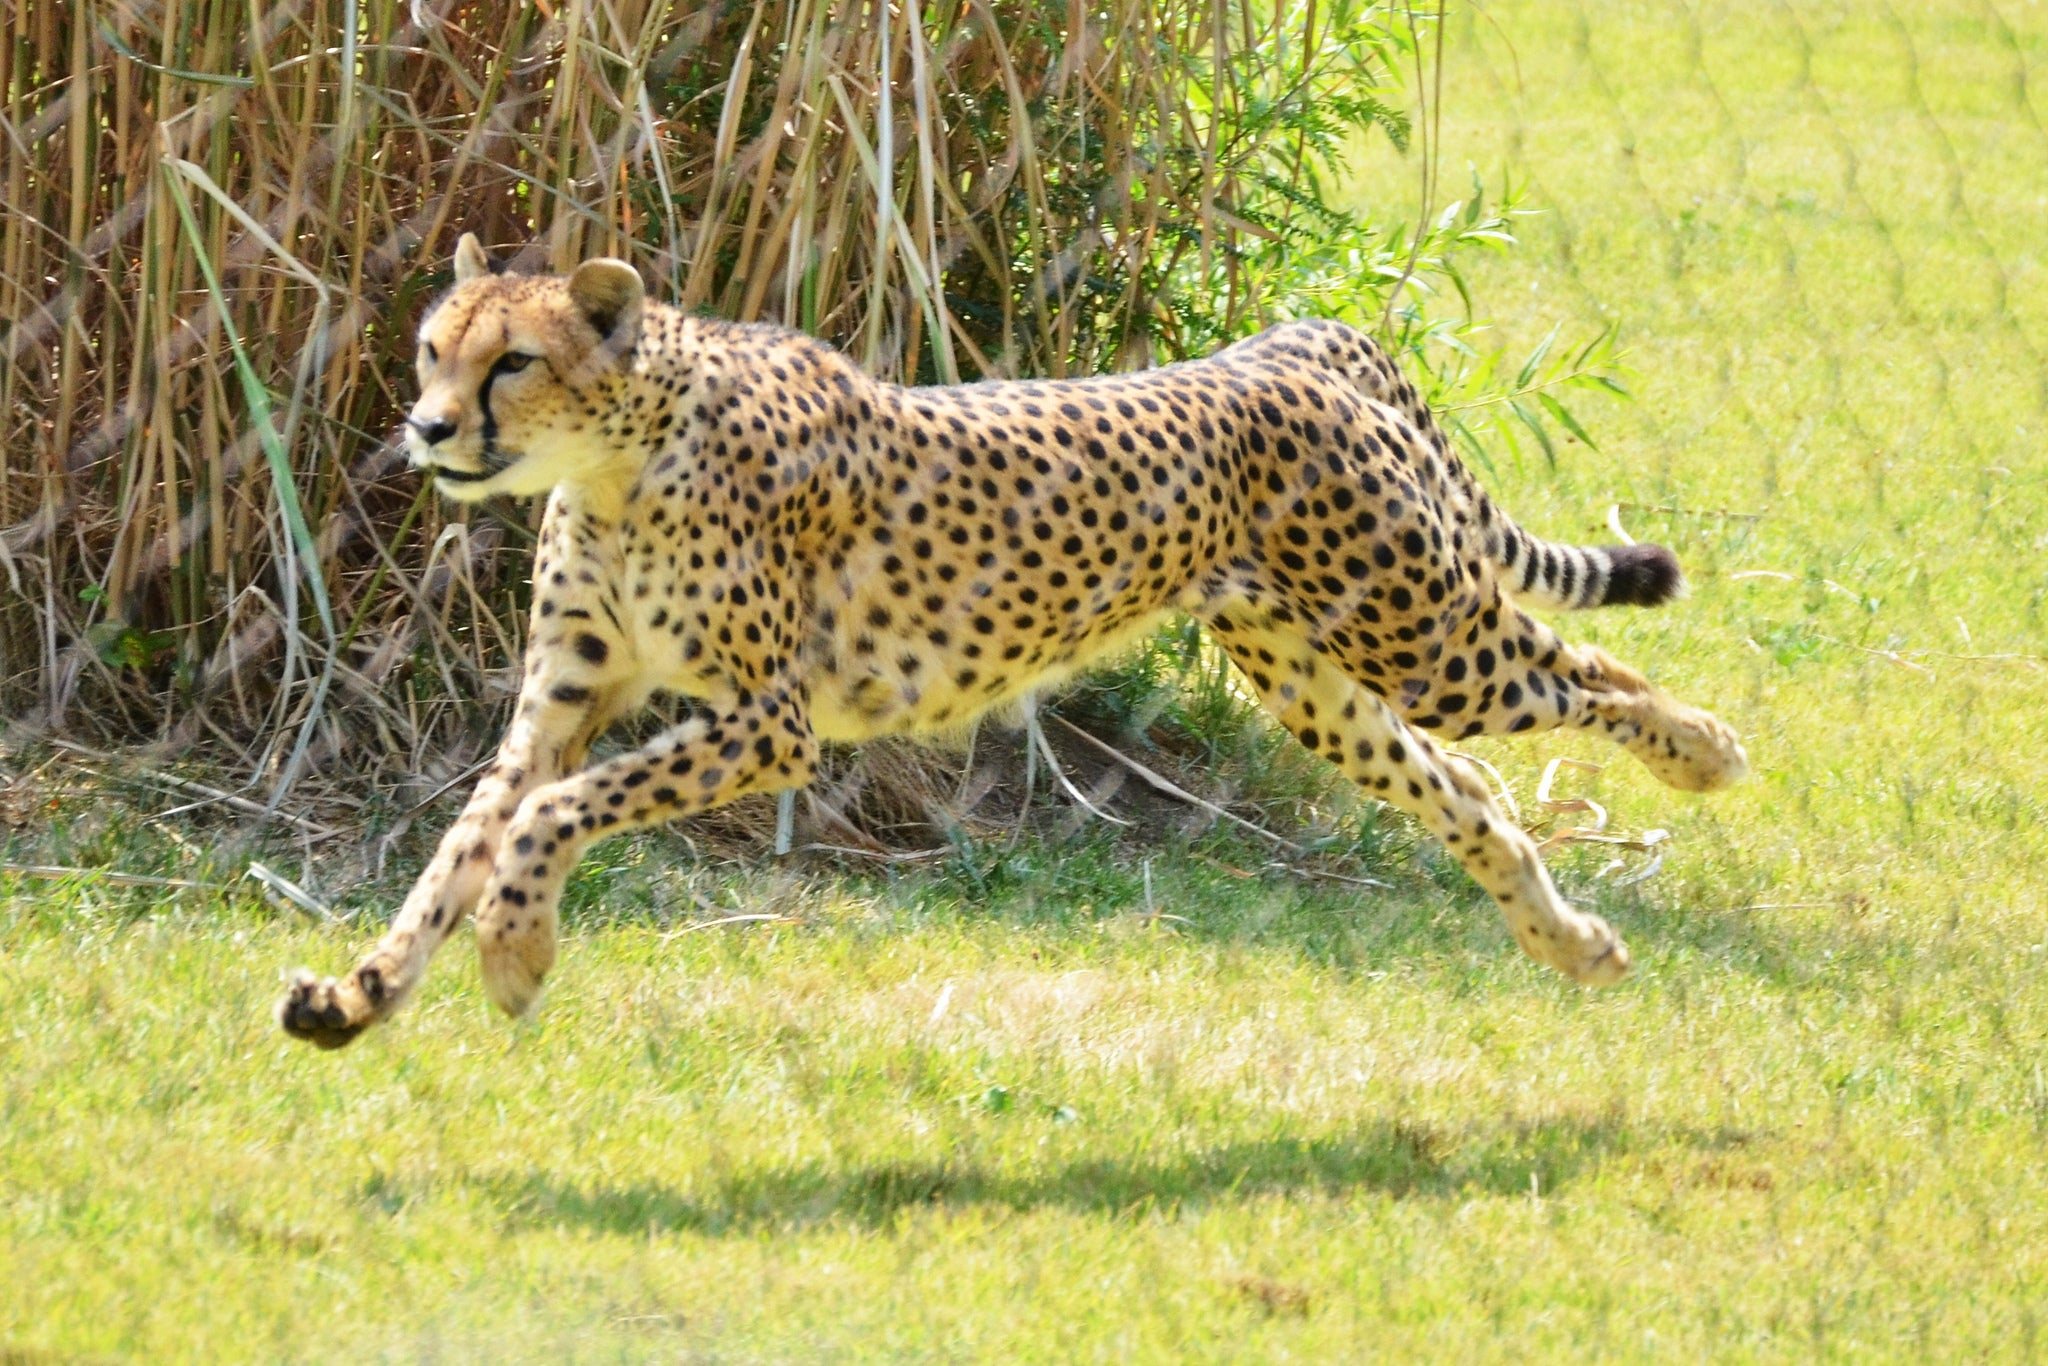 Sarah The Cheetah, World's Fastest Land Animal, Has Died